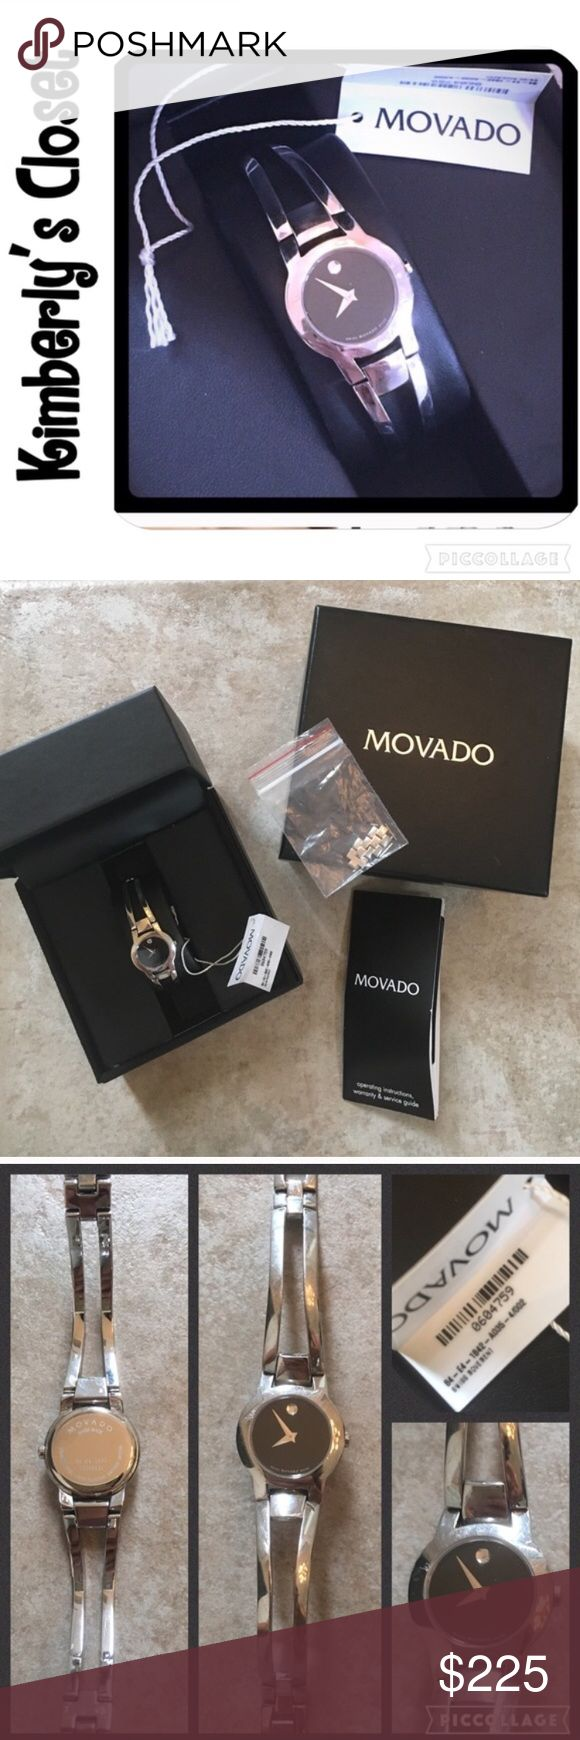 ❤MOVADO AMOROSA WATCH❤ Model #0604759 Women's 100% AUTHENTIC MOVADO Amorosa watch, 24 mm stainless steel case, black Museum dial with silver-toned dot and hands, stainless steel double-bar bangle-style bracelet with back sizing links and jewelry clasp.  Original box, booklet, tag (with model #) and extra links that were removed are included.  Band and silver around face have many small scuffs and scratches from light wear (see photos). Movado Accessories Watches